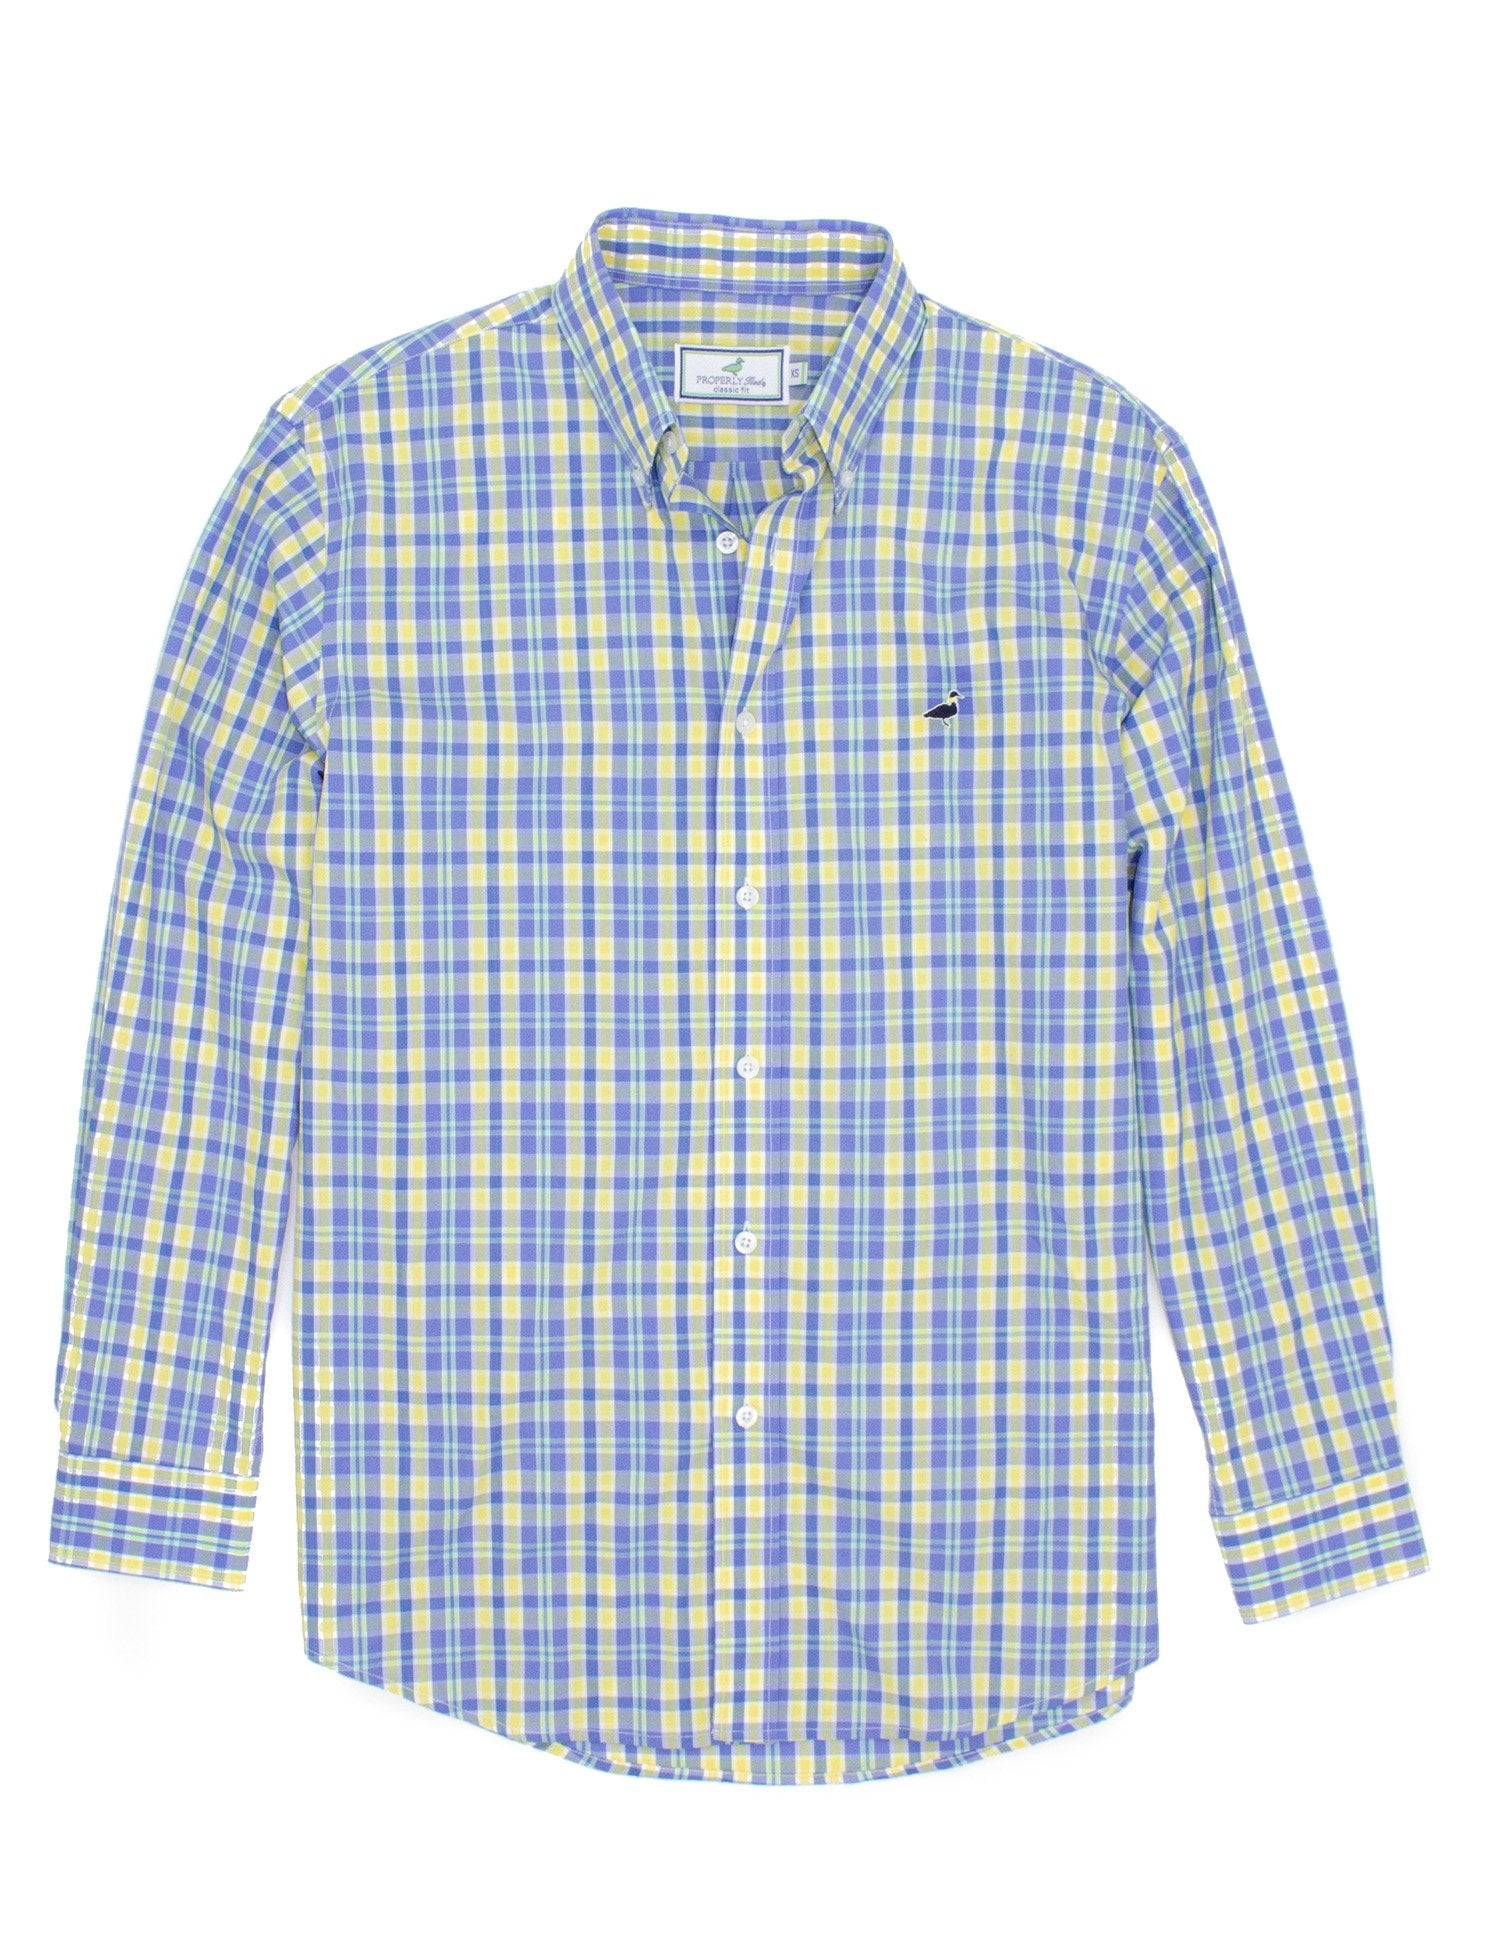 Skipper Seasonal Sportshirt